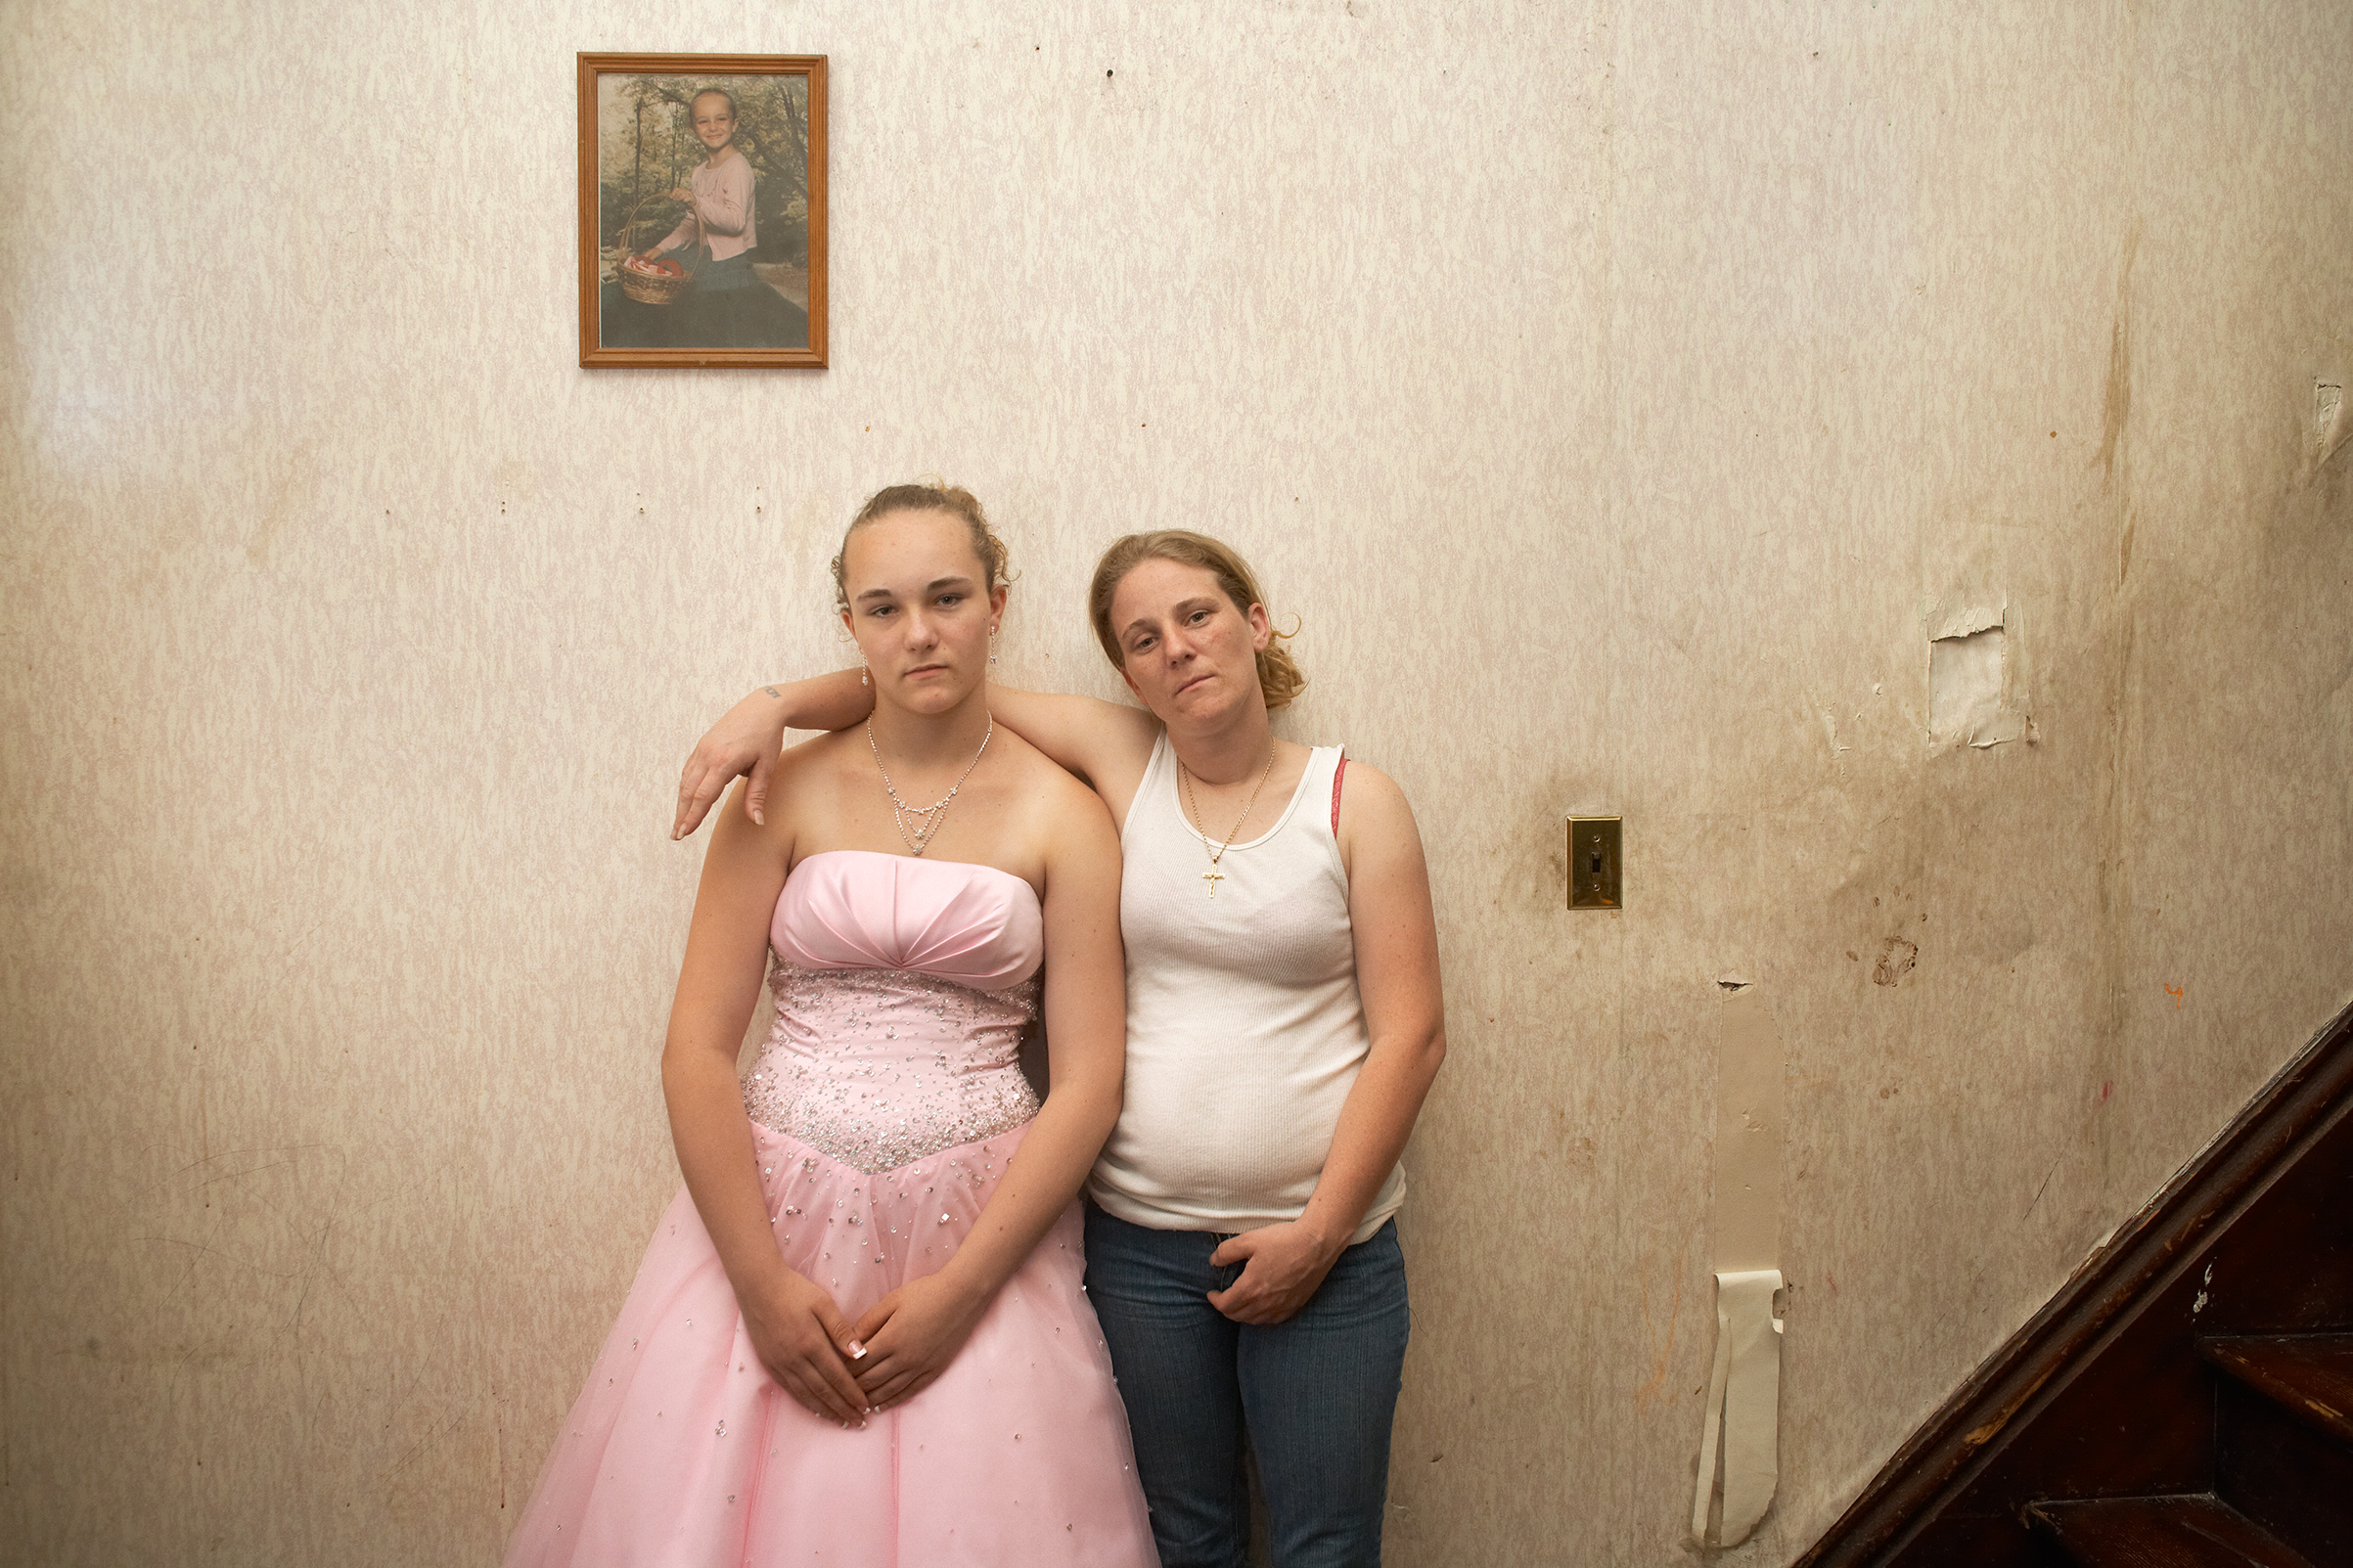 DJ and her oldest daughter, Little Vic, on prom day in June 2009.  DJ's mother, Big Vic, raised Little Vic because DJ was not yet of the legal age when she gave birth,  says Kenneally.